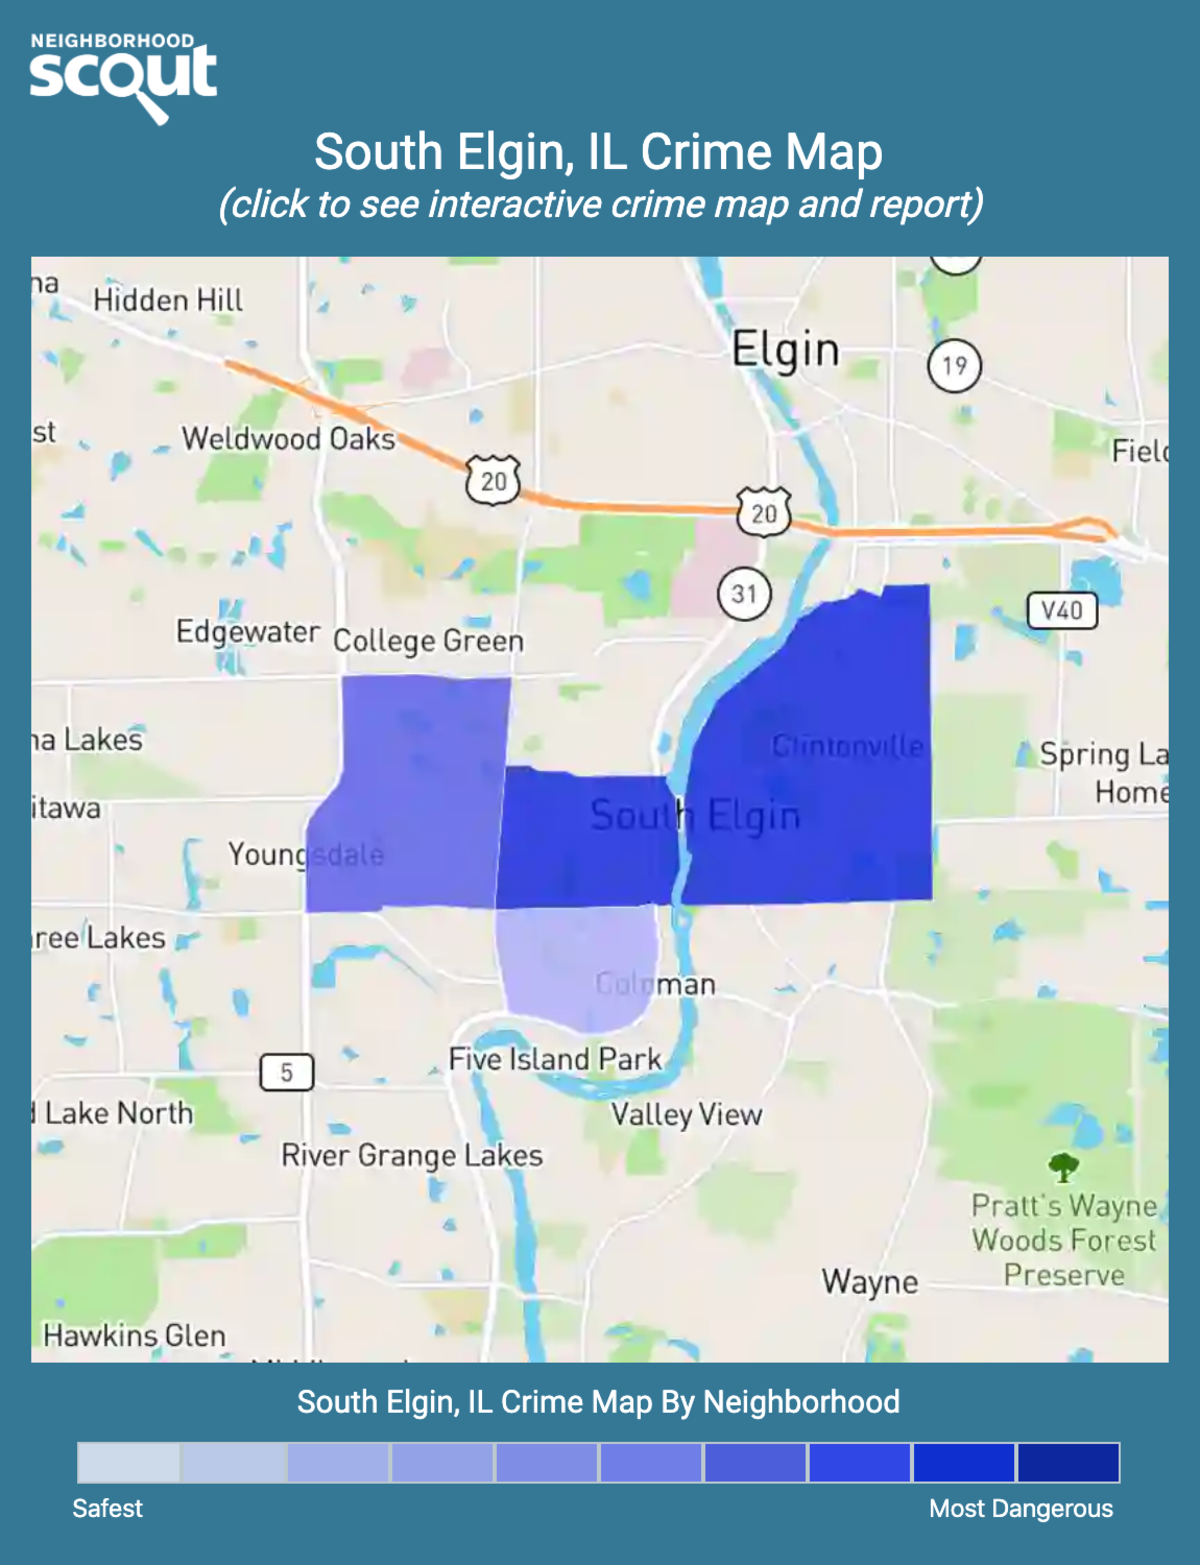 South Elgin, Illinois crime map